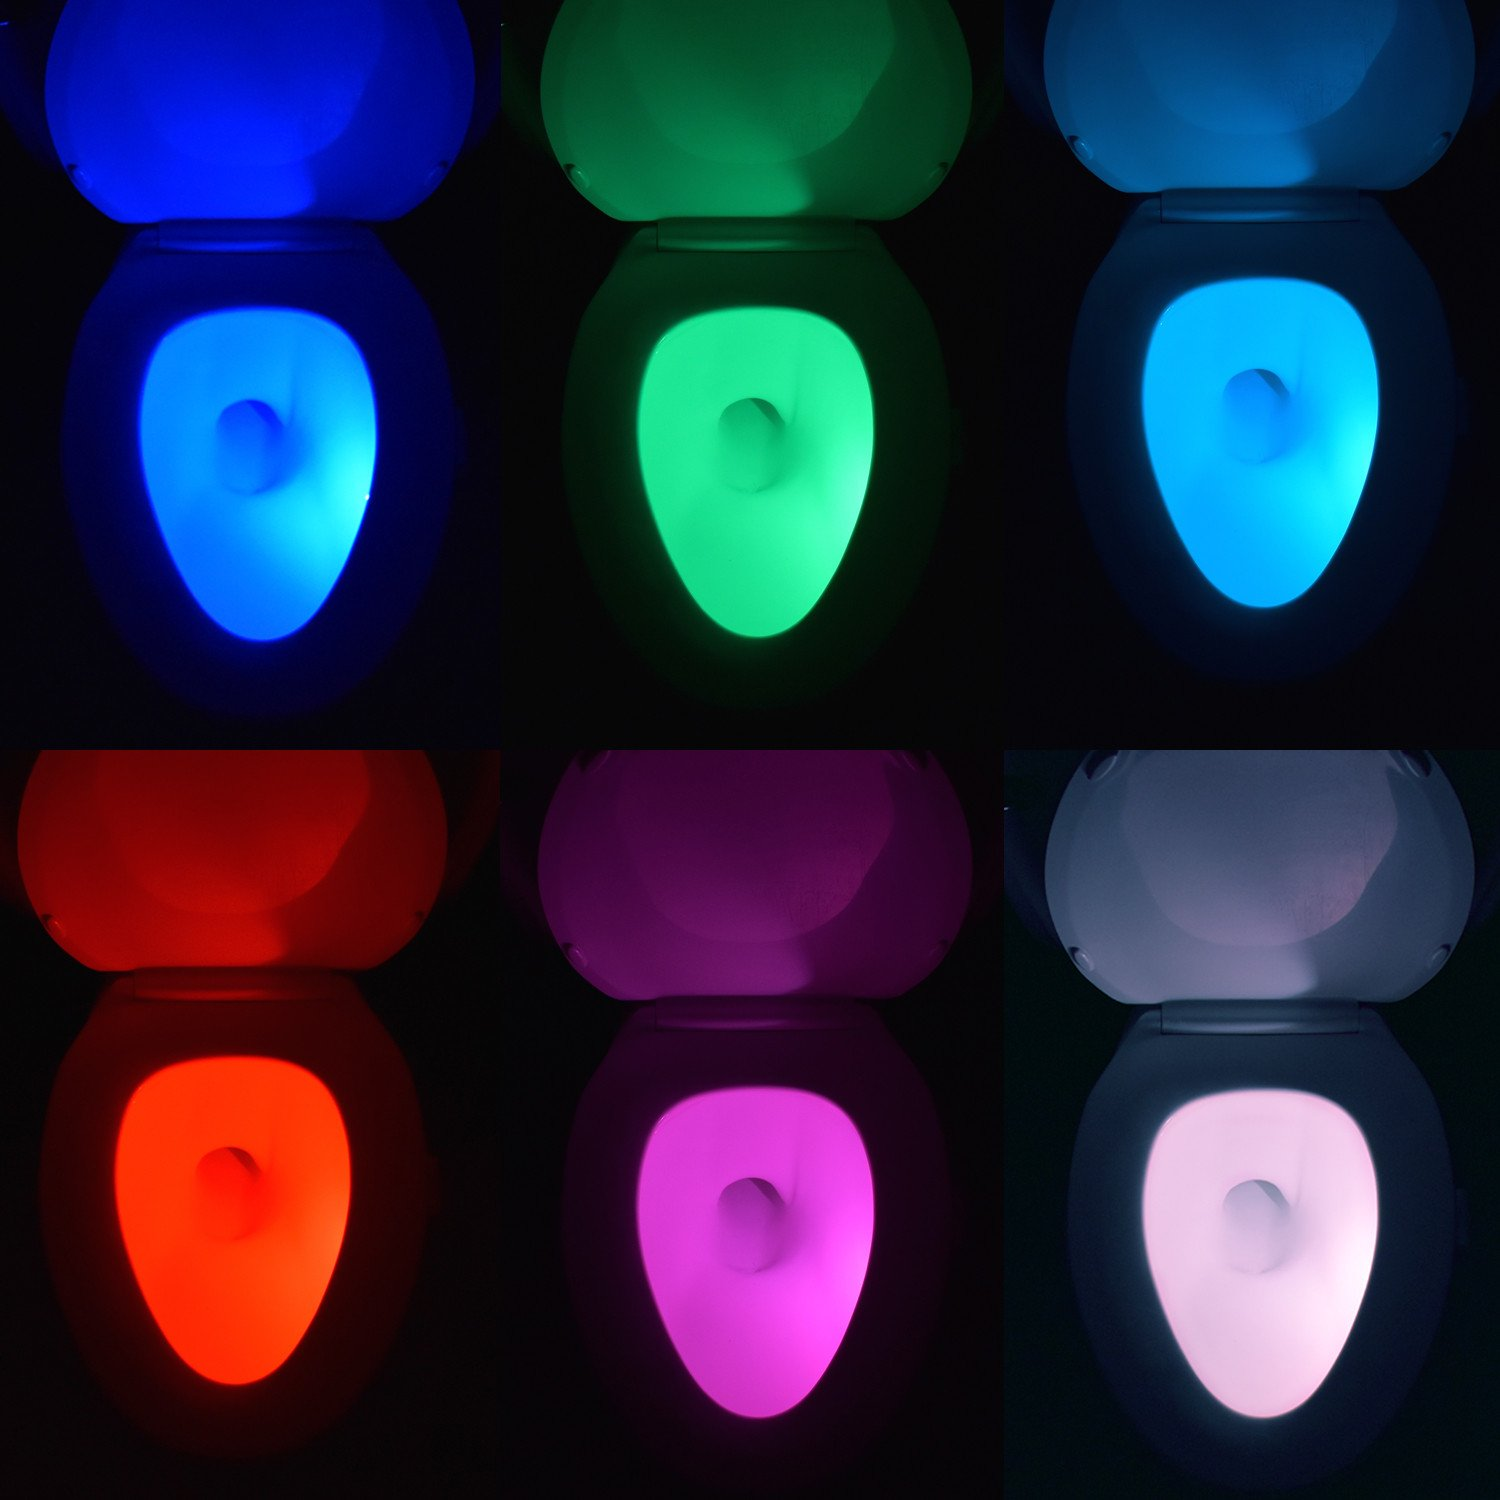 goodhome waterproof motion light sensor led auto shut off 16 goodhome waterproof motion light sensor led auto shut off 16 colors toilet night light with 5 brightness settings and aa batteries amazon com